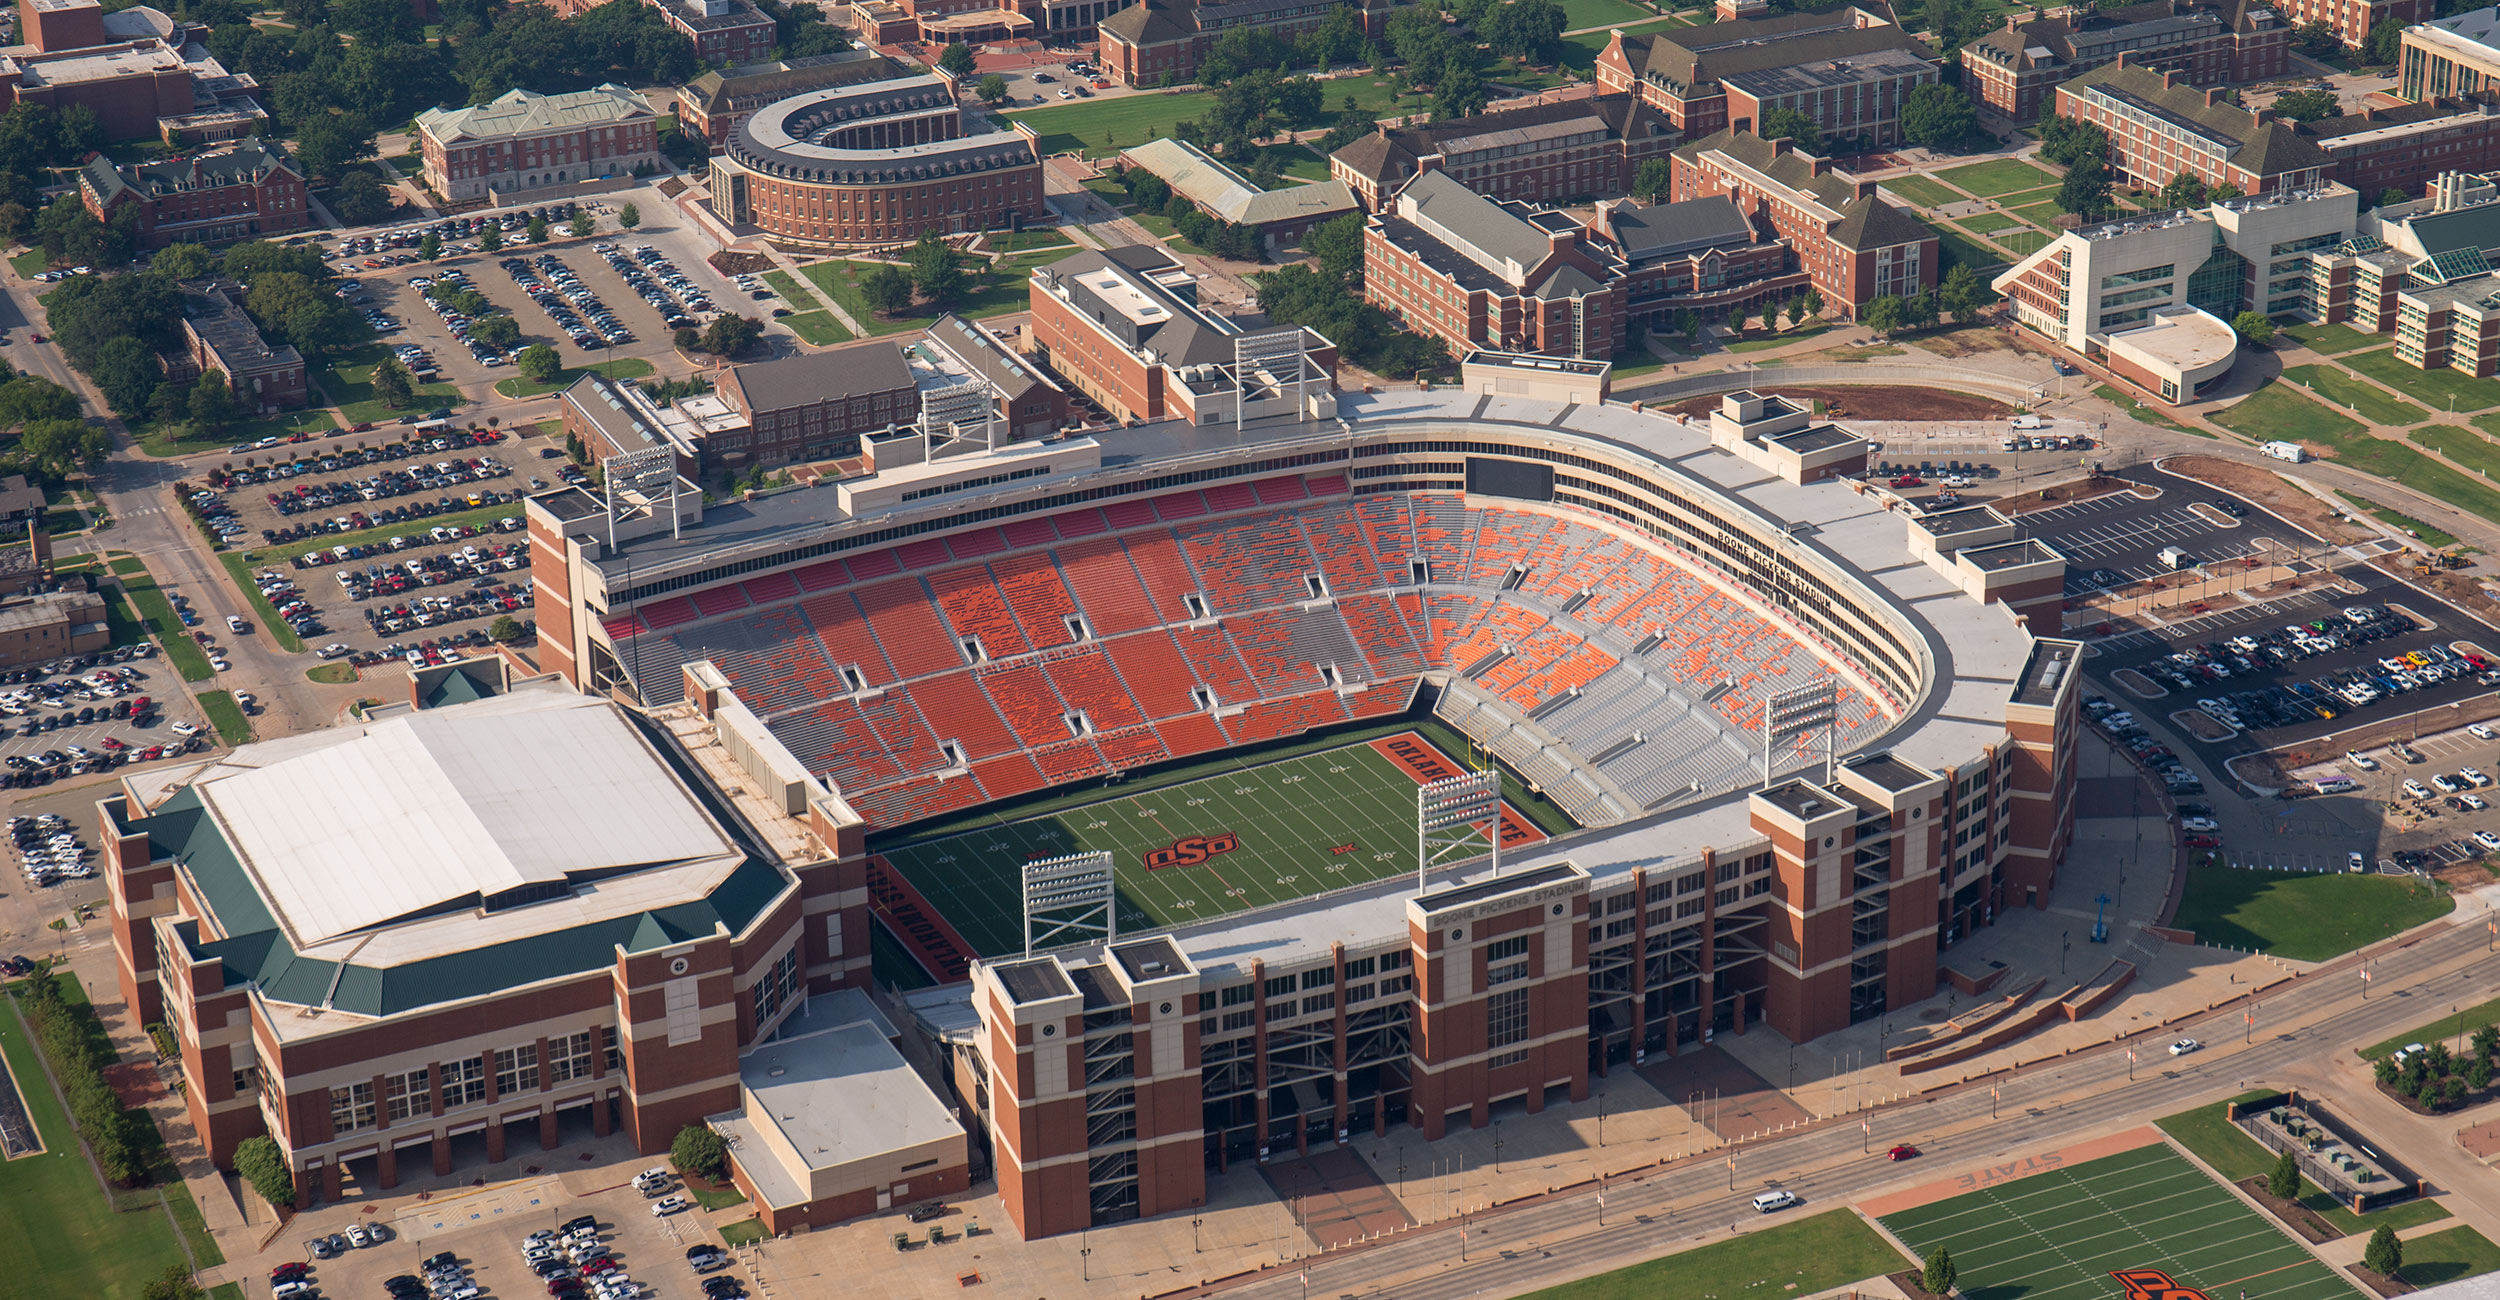 A photo of Boone Pickens Stadium from the sky.